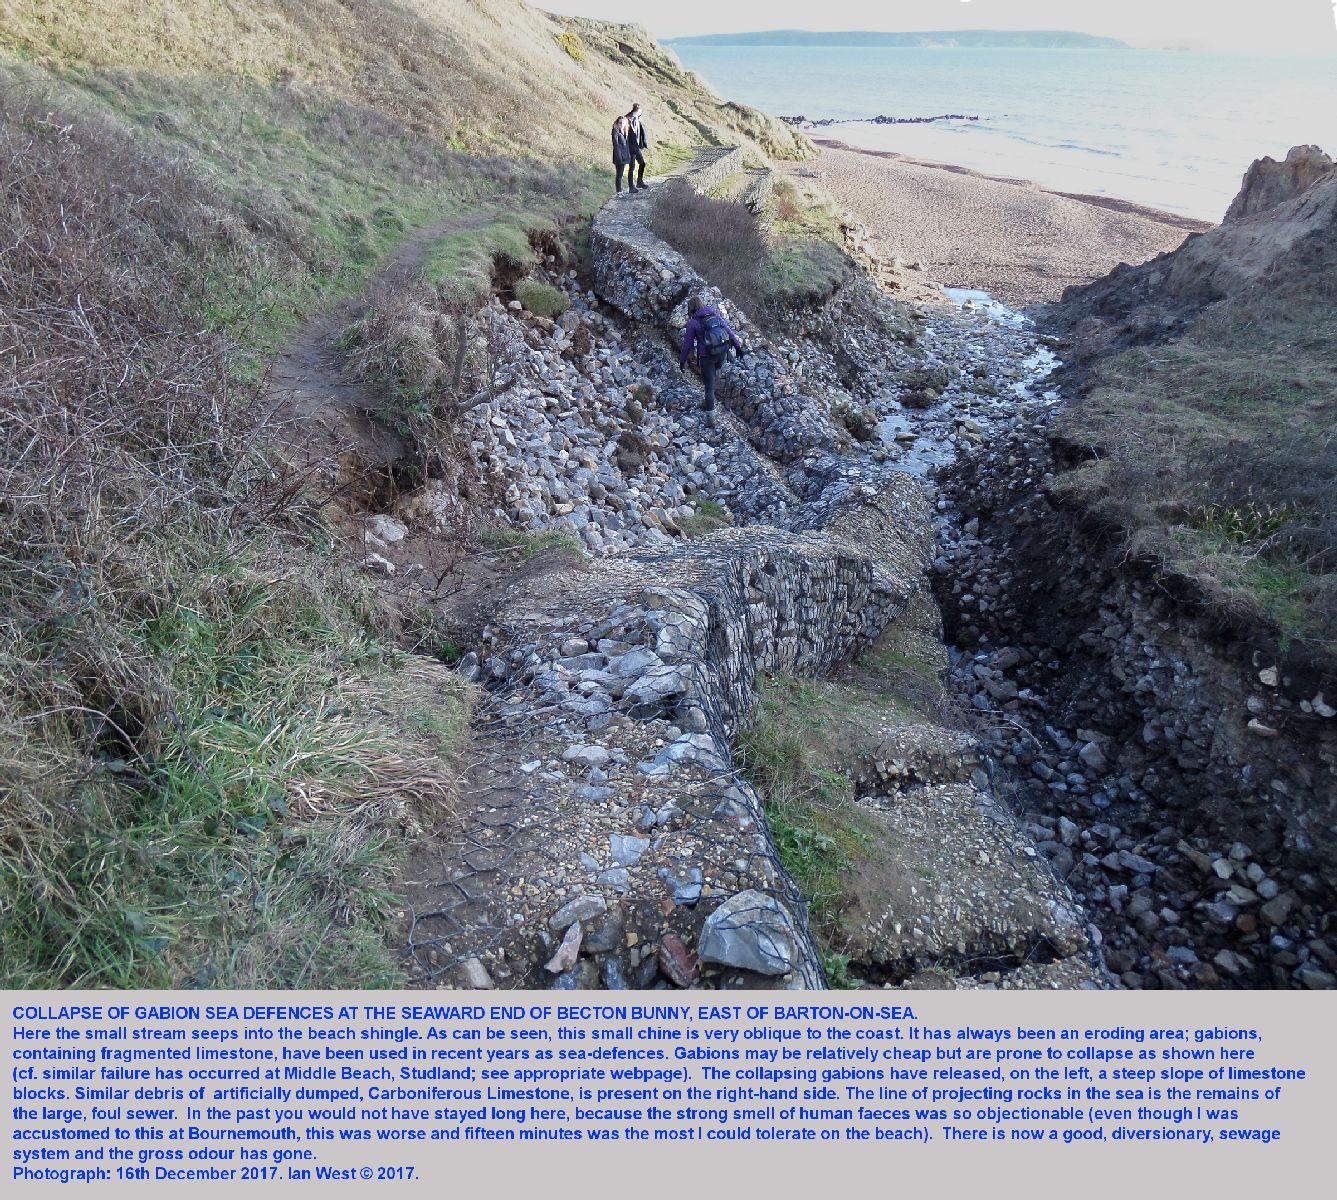 Collapse of gabions at the Becton Bunny chine, east of Barton-on-Sea, Hampshire, the result of coast erosion, as seen on the 16th December 2017, Ian West